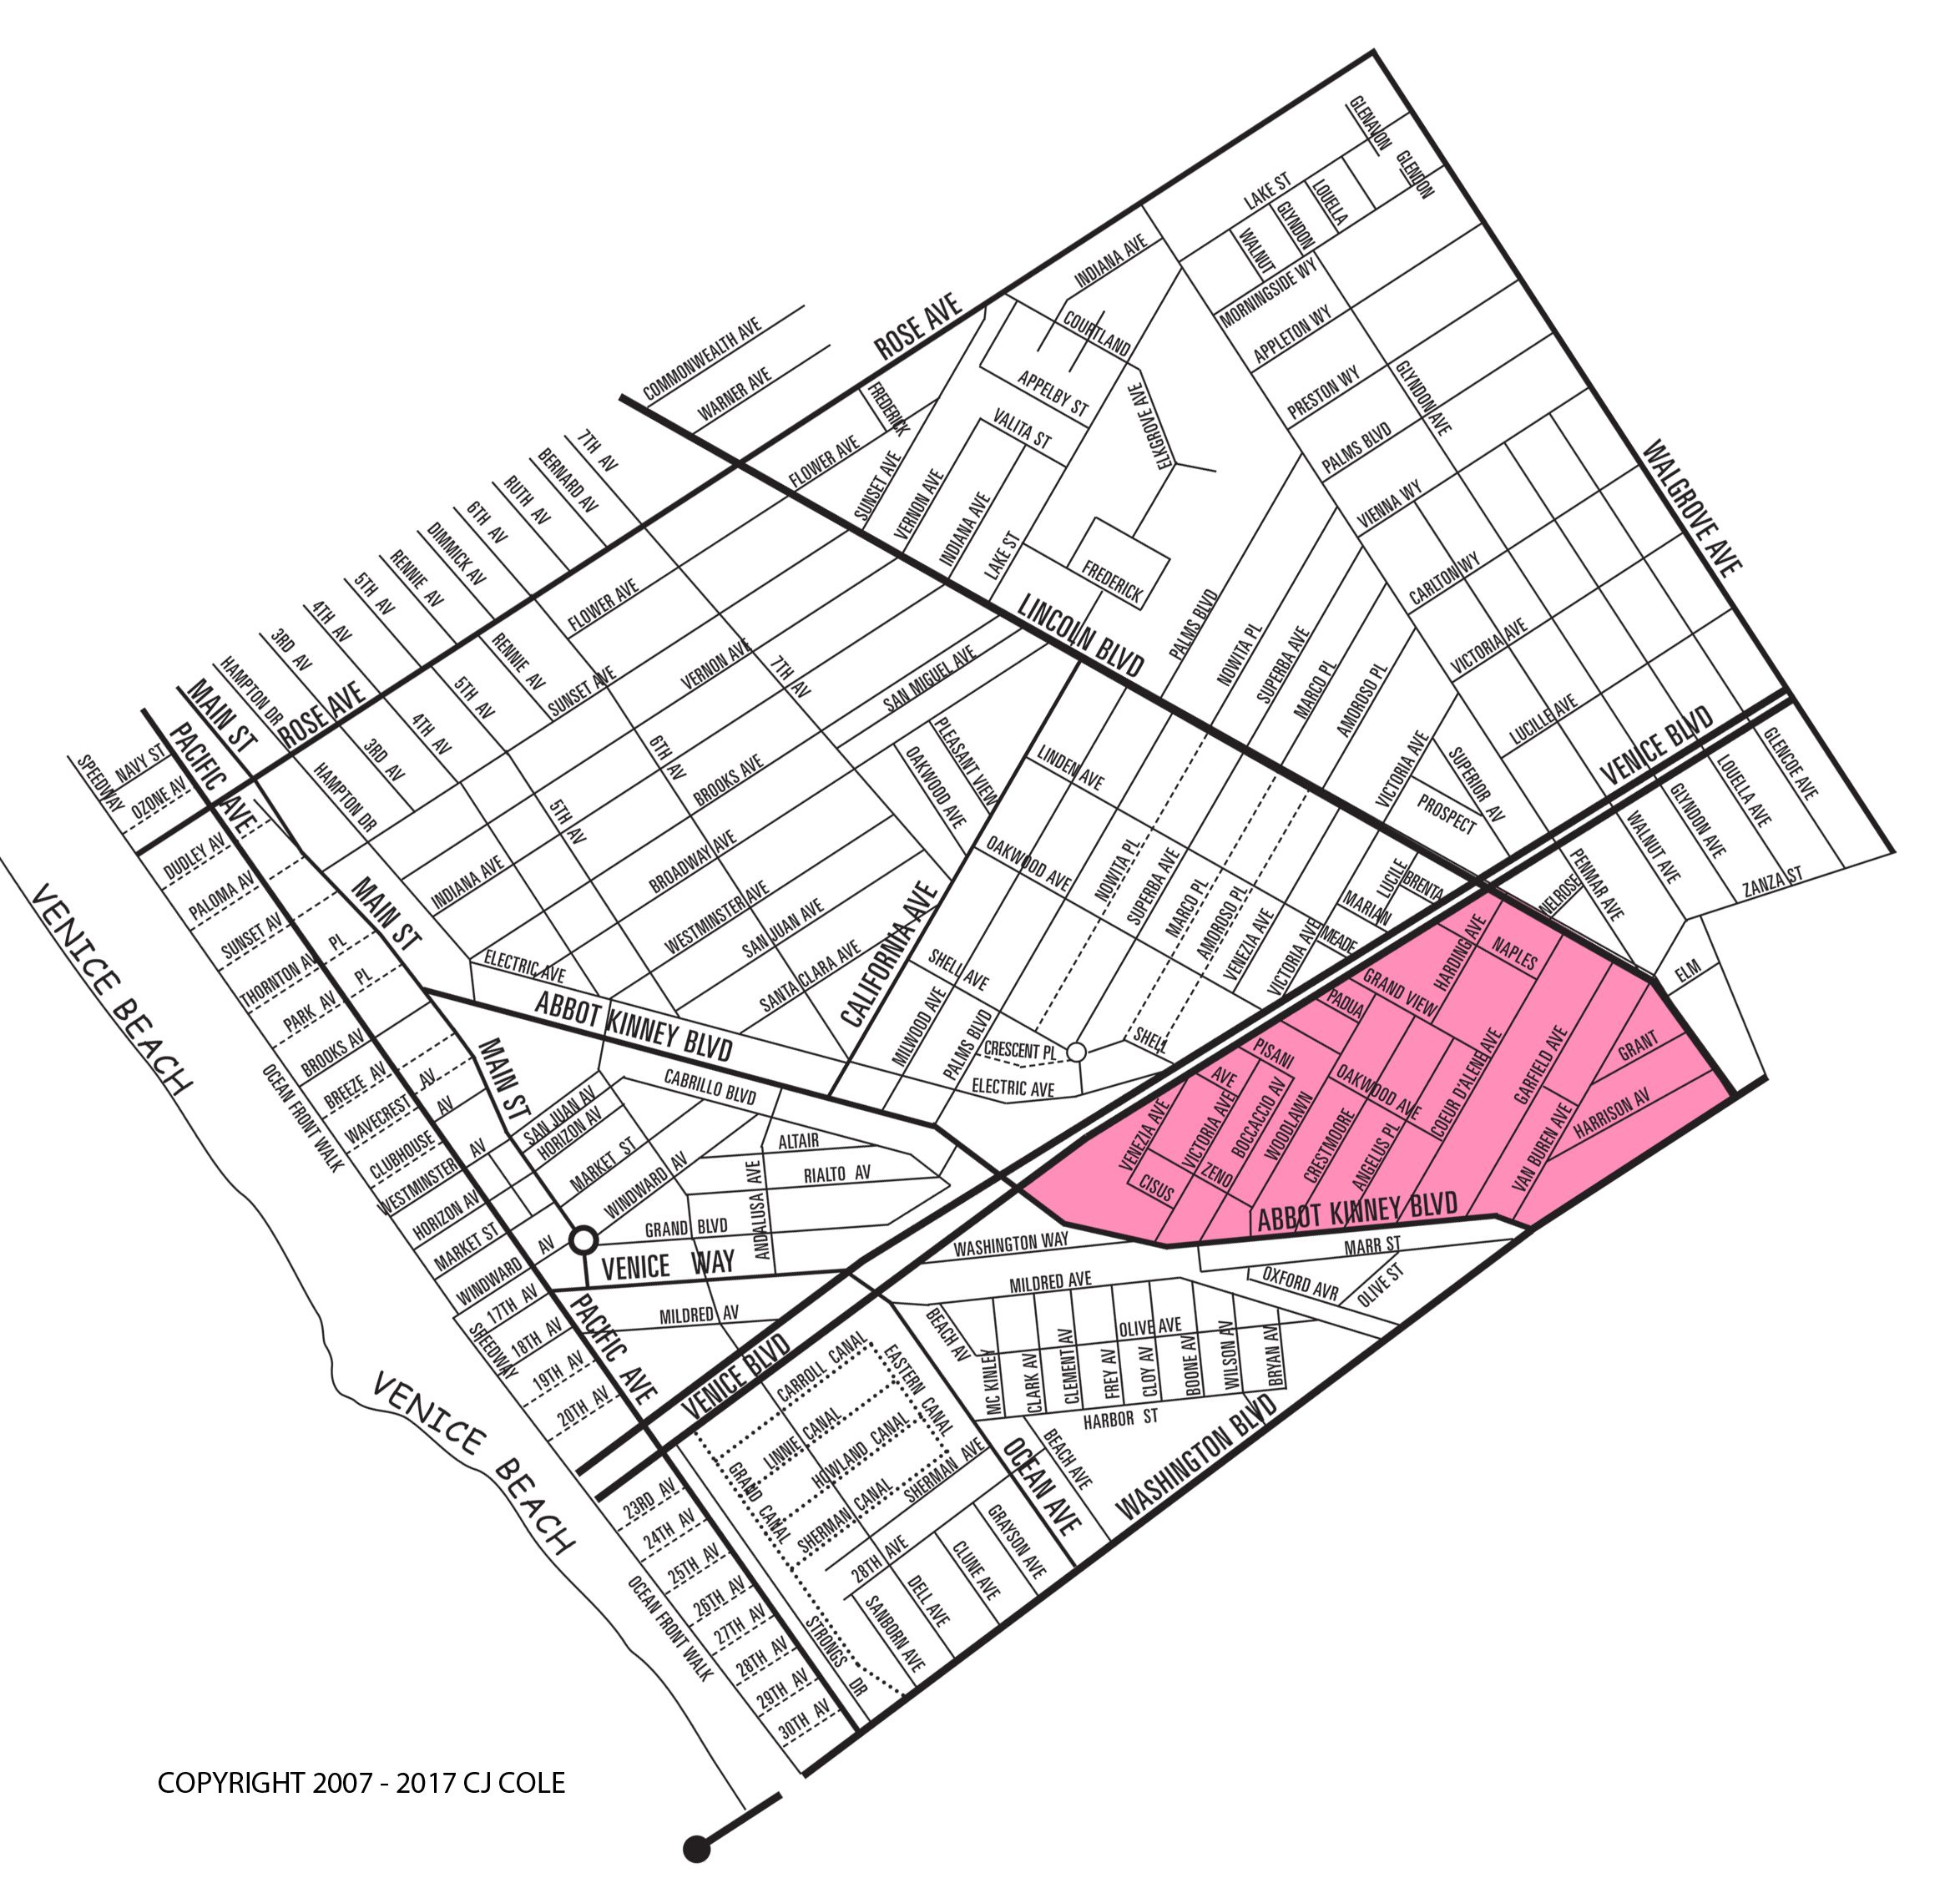 President's Row Neighborhood Map